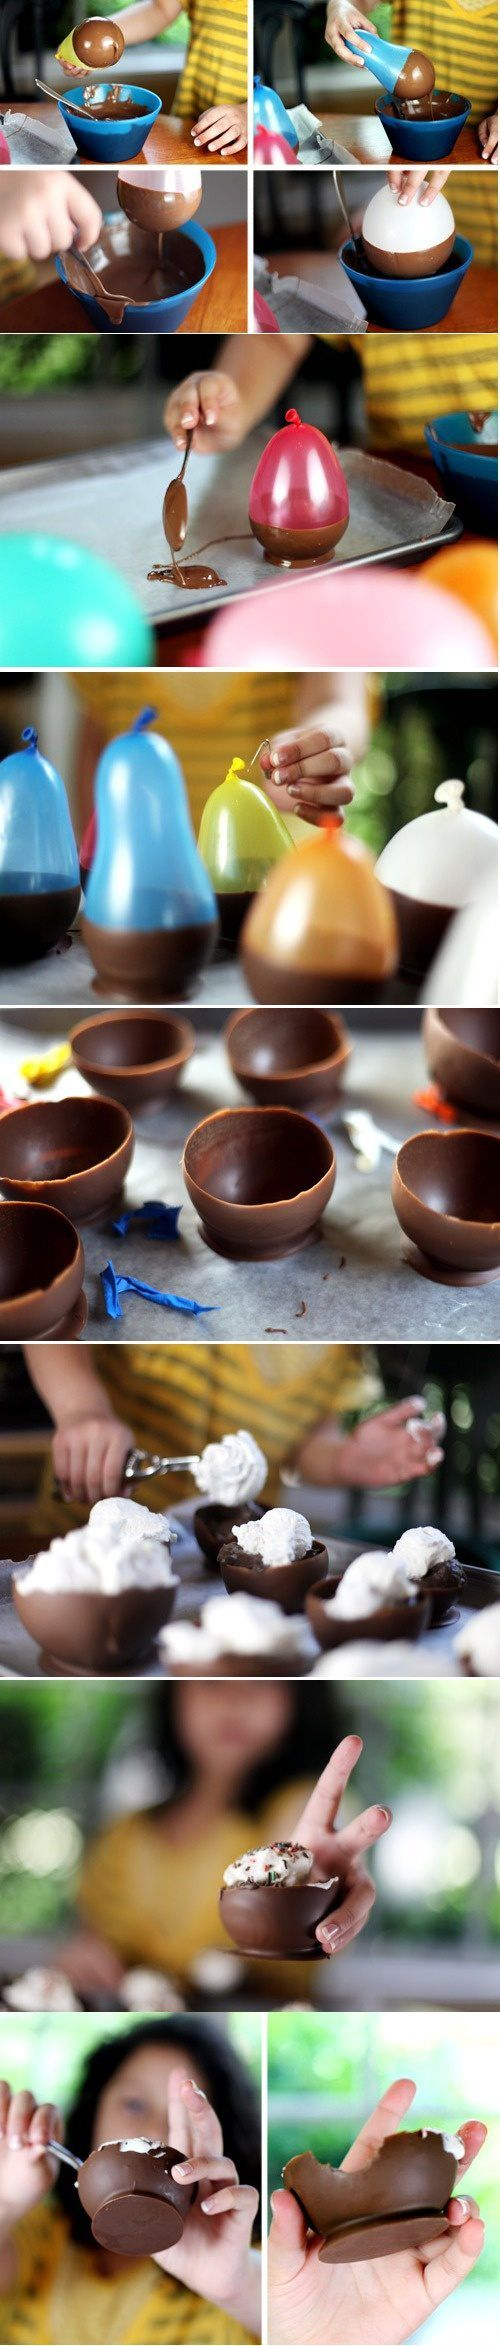 DIY Balloon Chocolate Bowls - Originales cuencos de chocolate